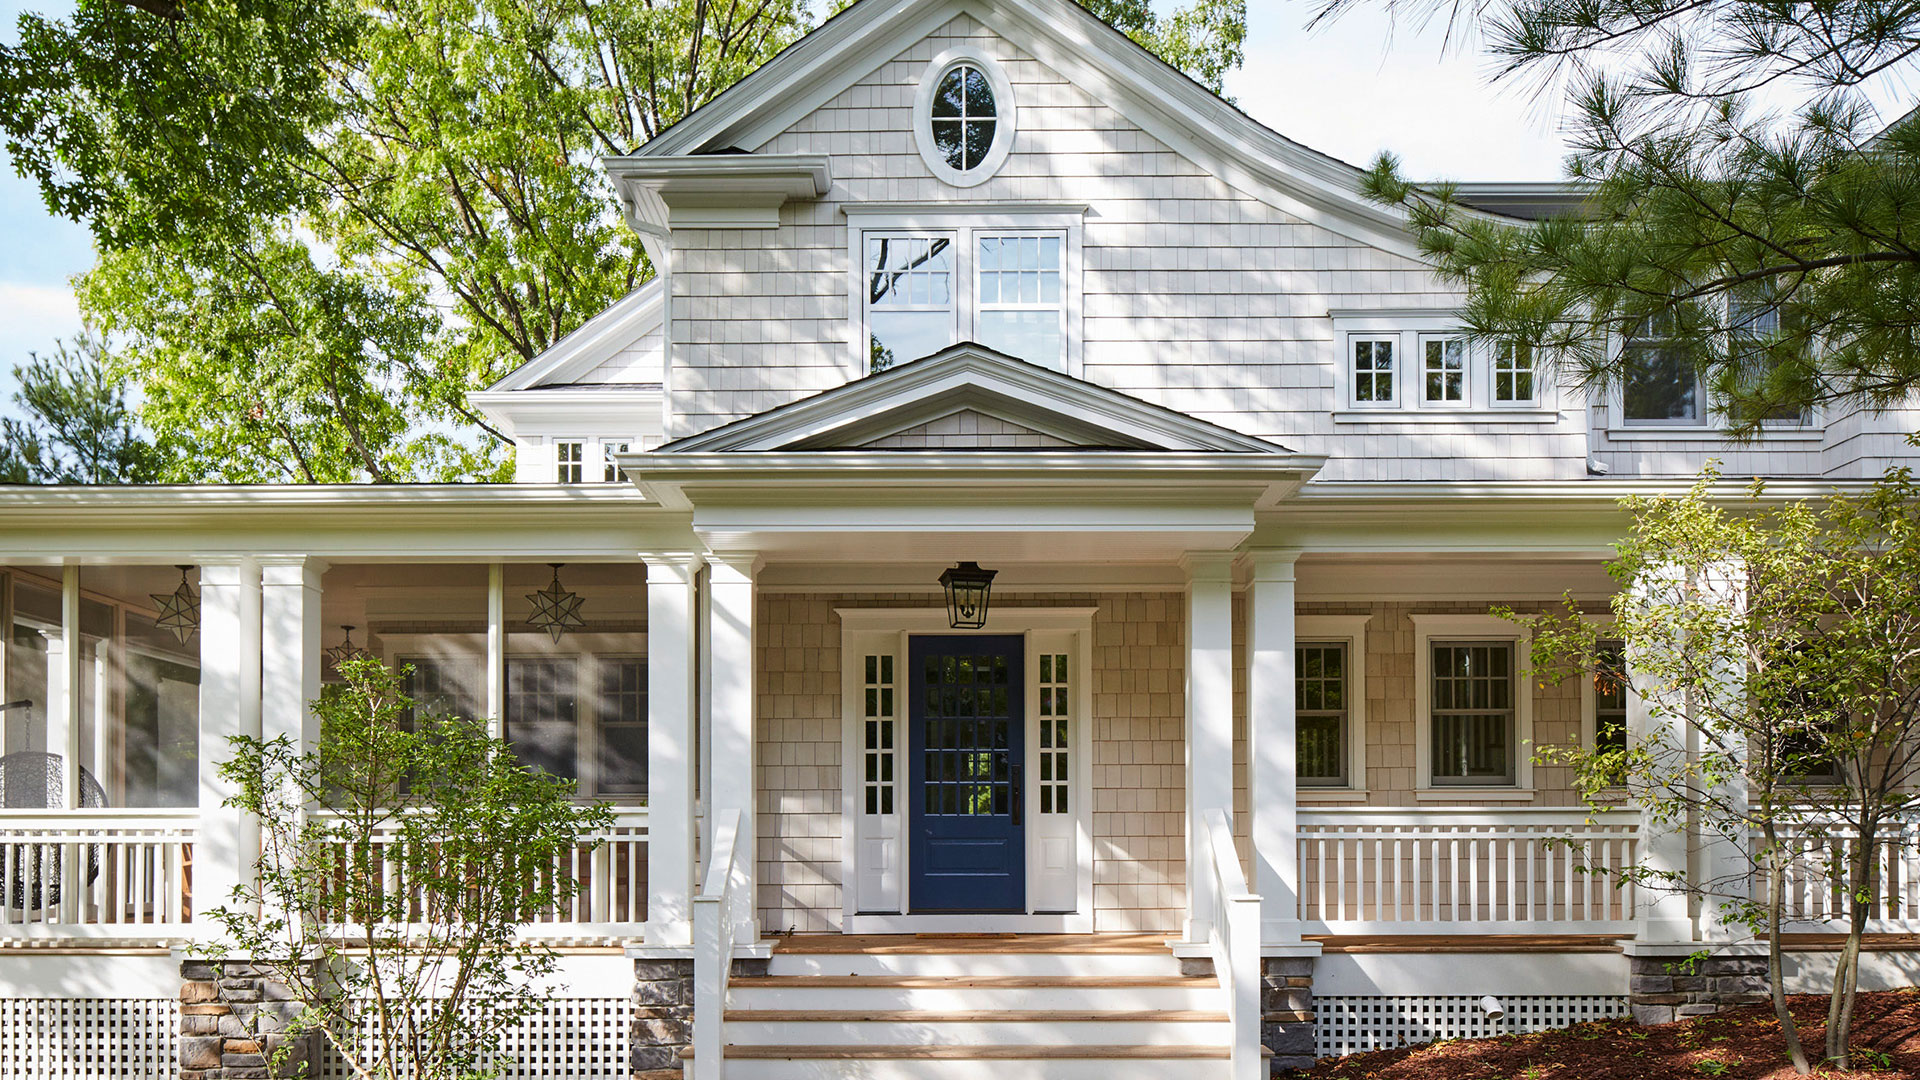 Cute House with Blue Front Door